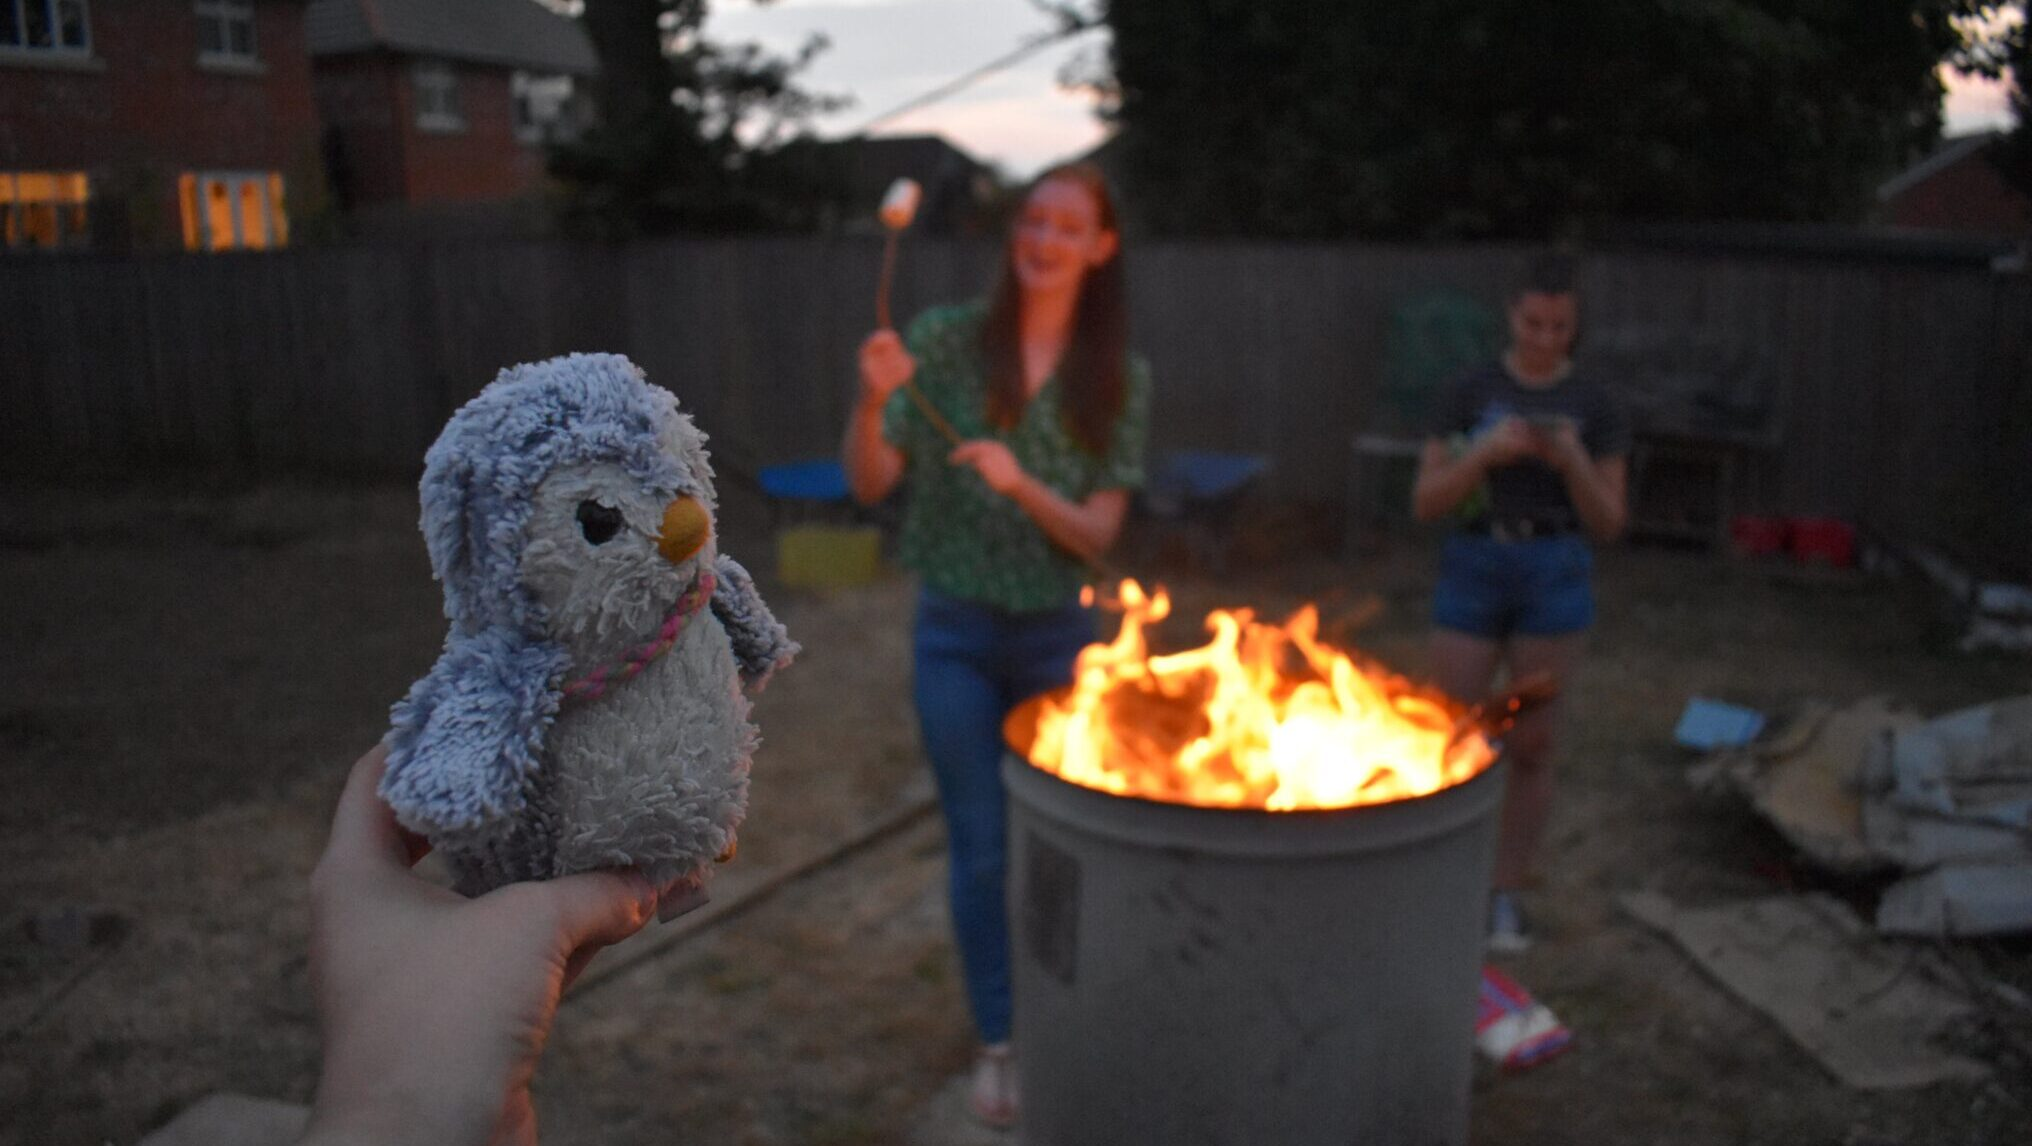 Arnold the penguin watching a bonfire